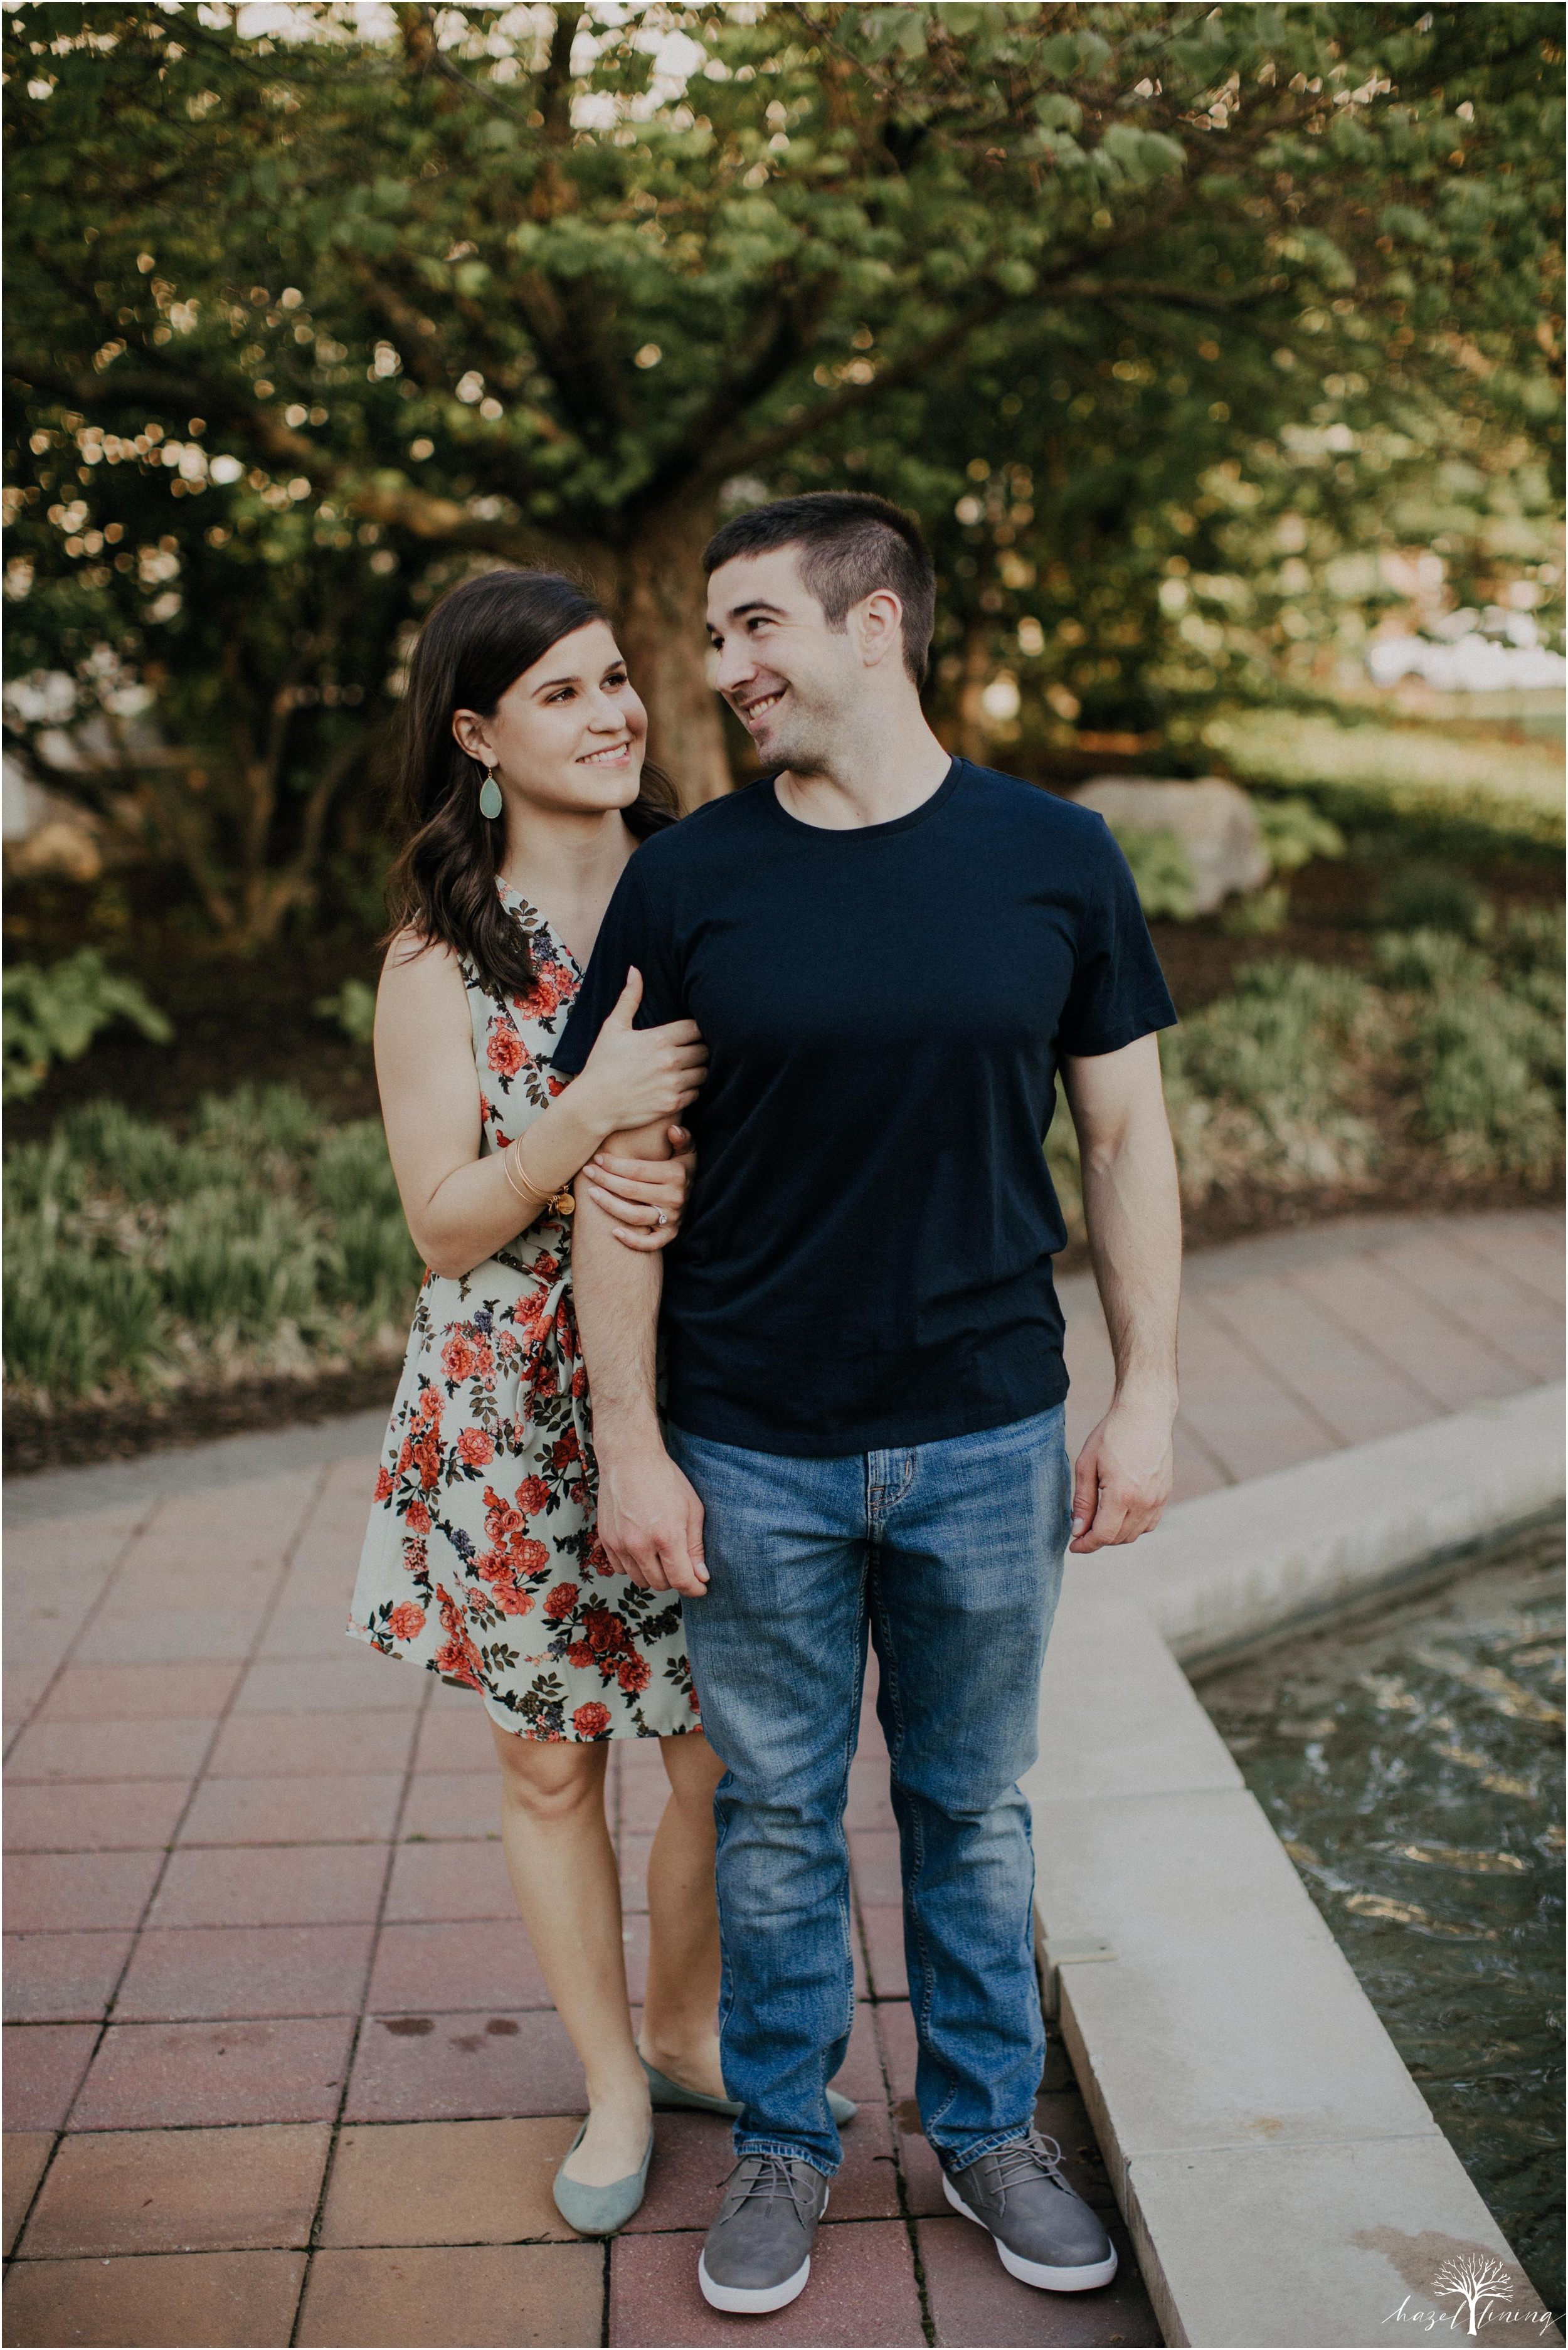 ellyn-jack-kutztown-university-of-pennsylvania-engagement-session-hazel-lining-photography-destination-elopement-wedding-engagement-photography_0246.jpg